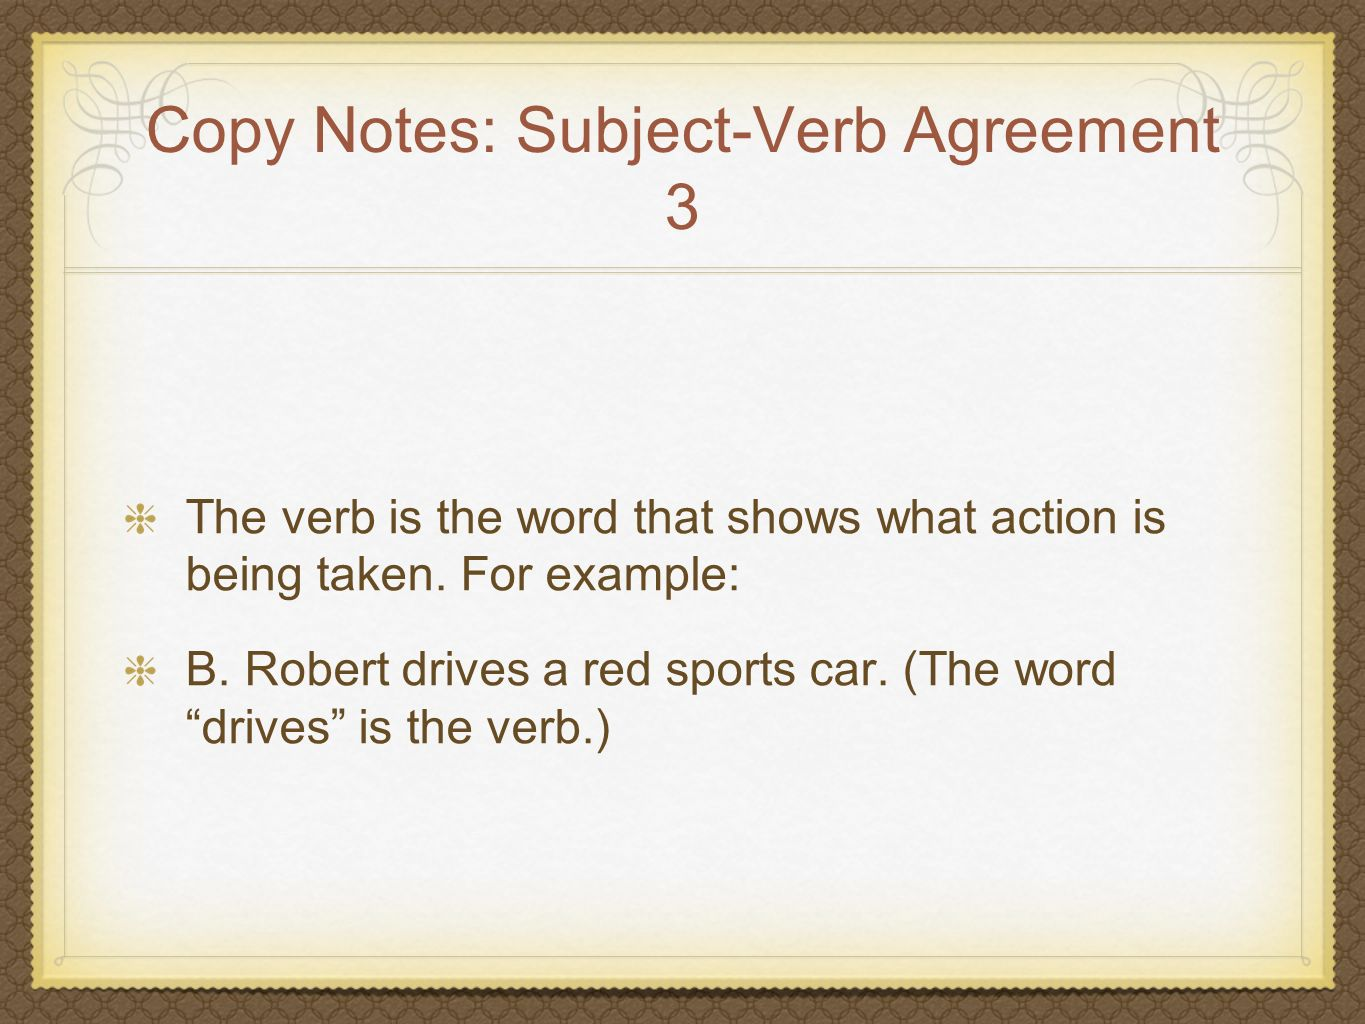 Copy Notes: Subject-Verb Agreement 3